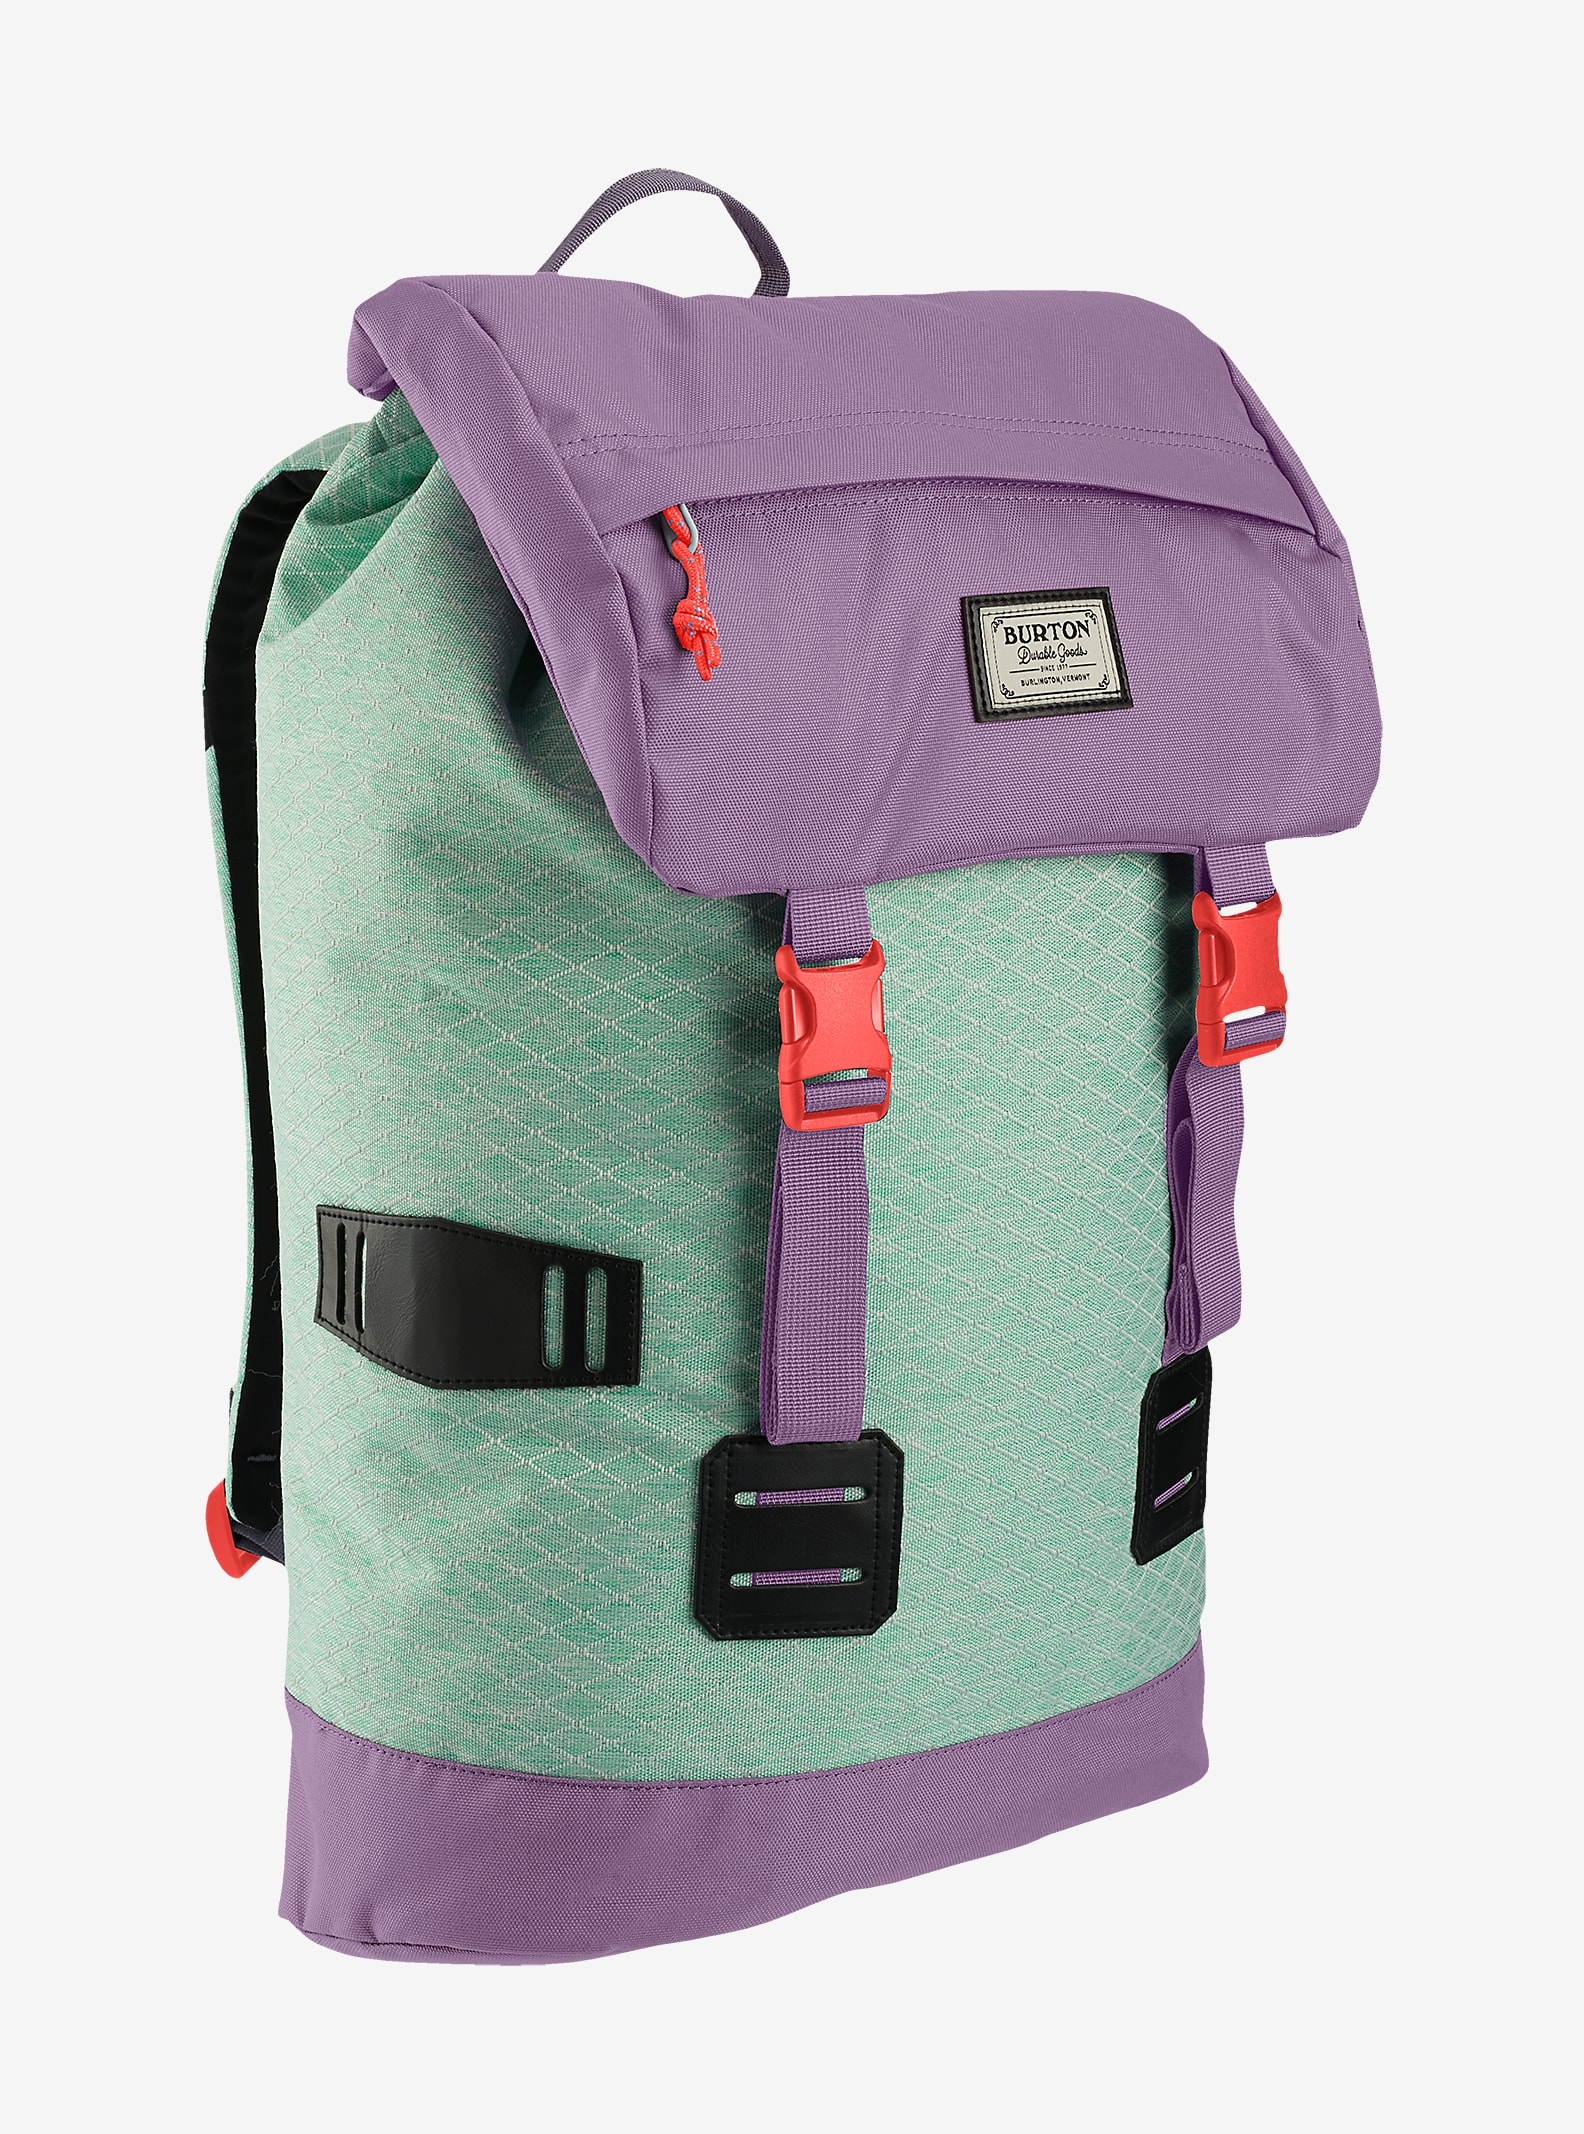 Burton Women's Tinder Backpack shown in Hint Of Mint